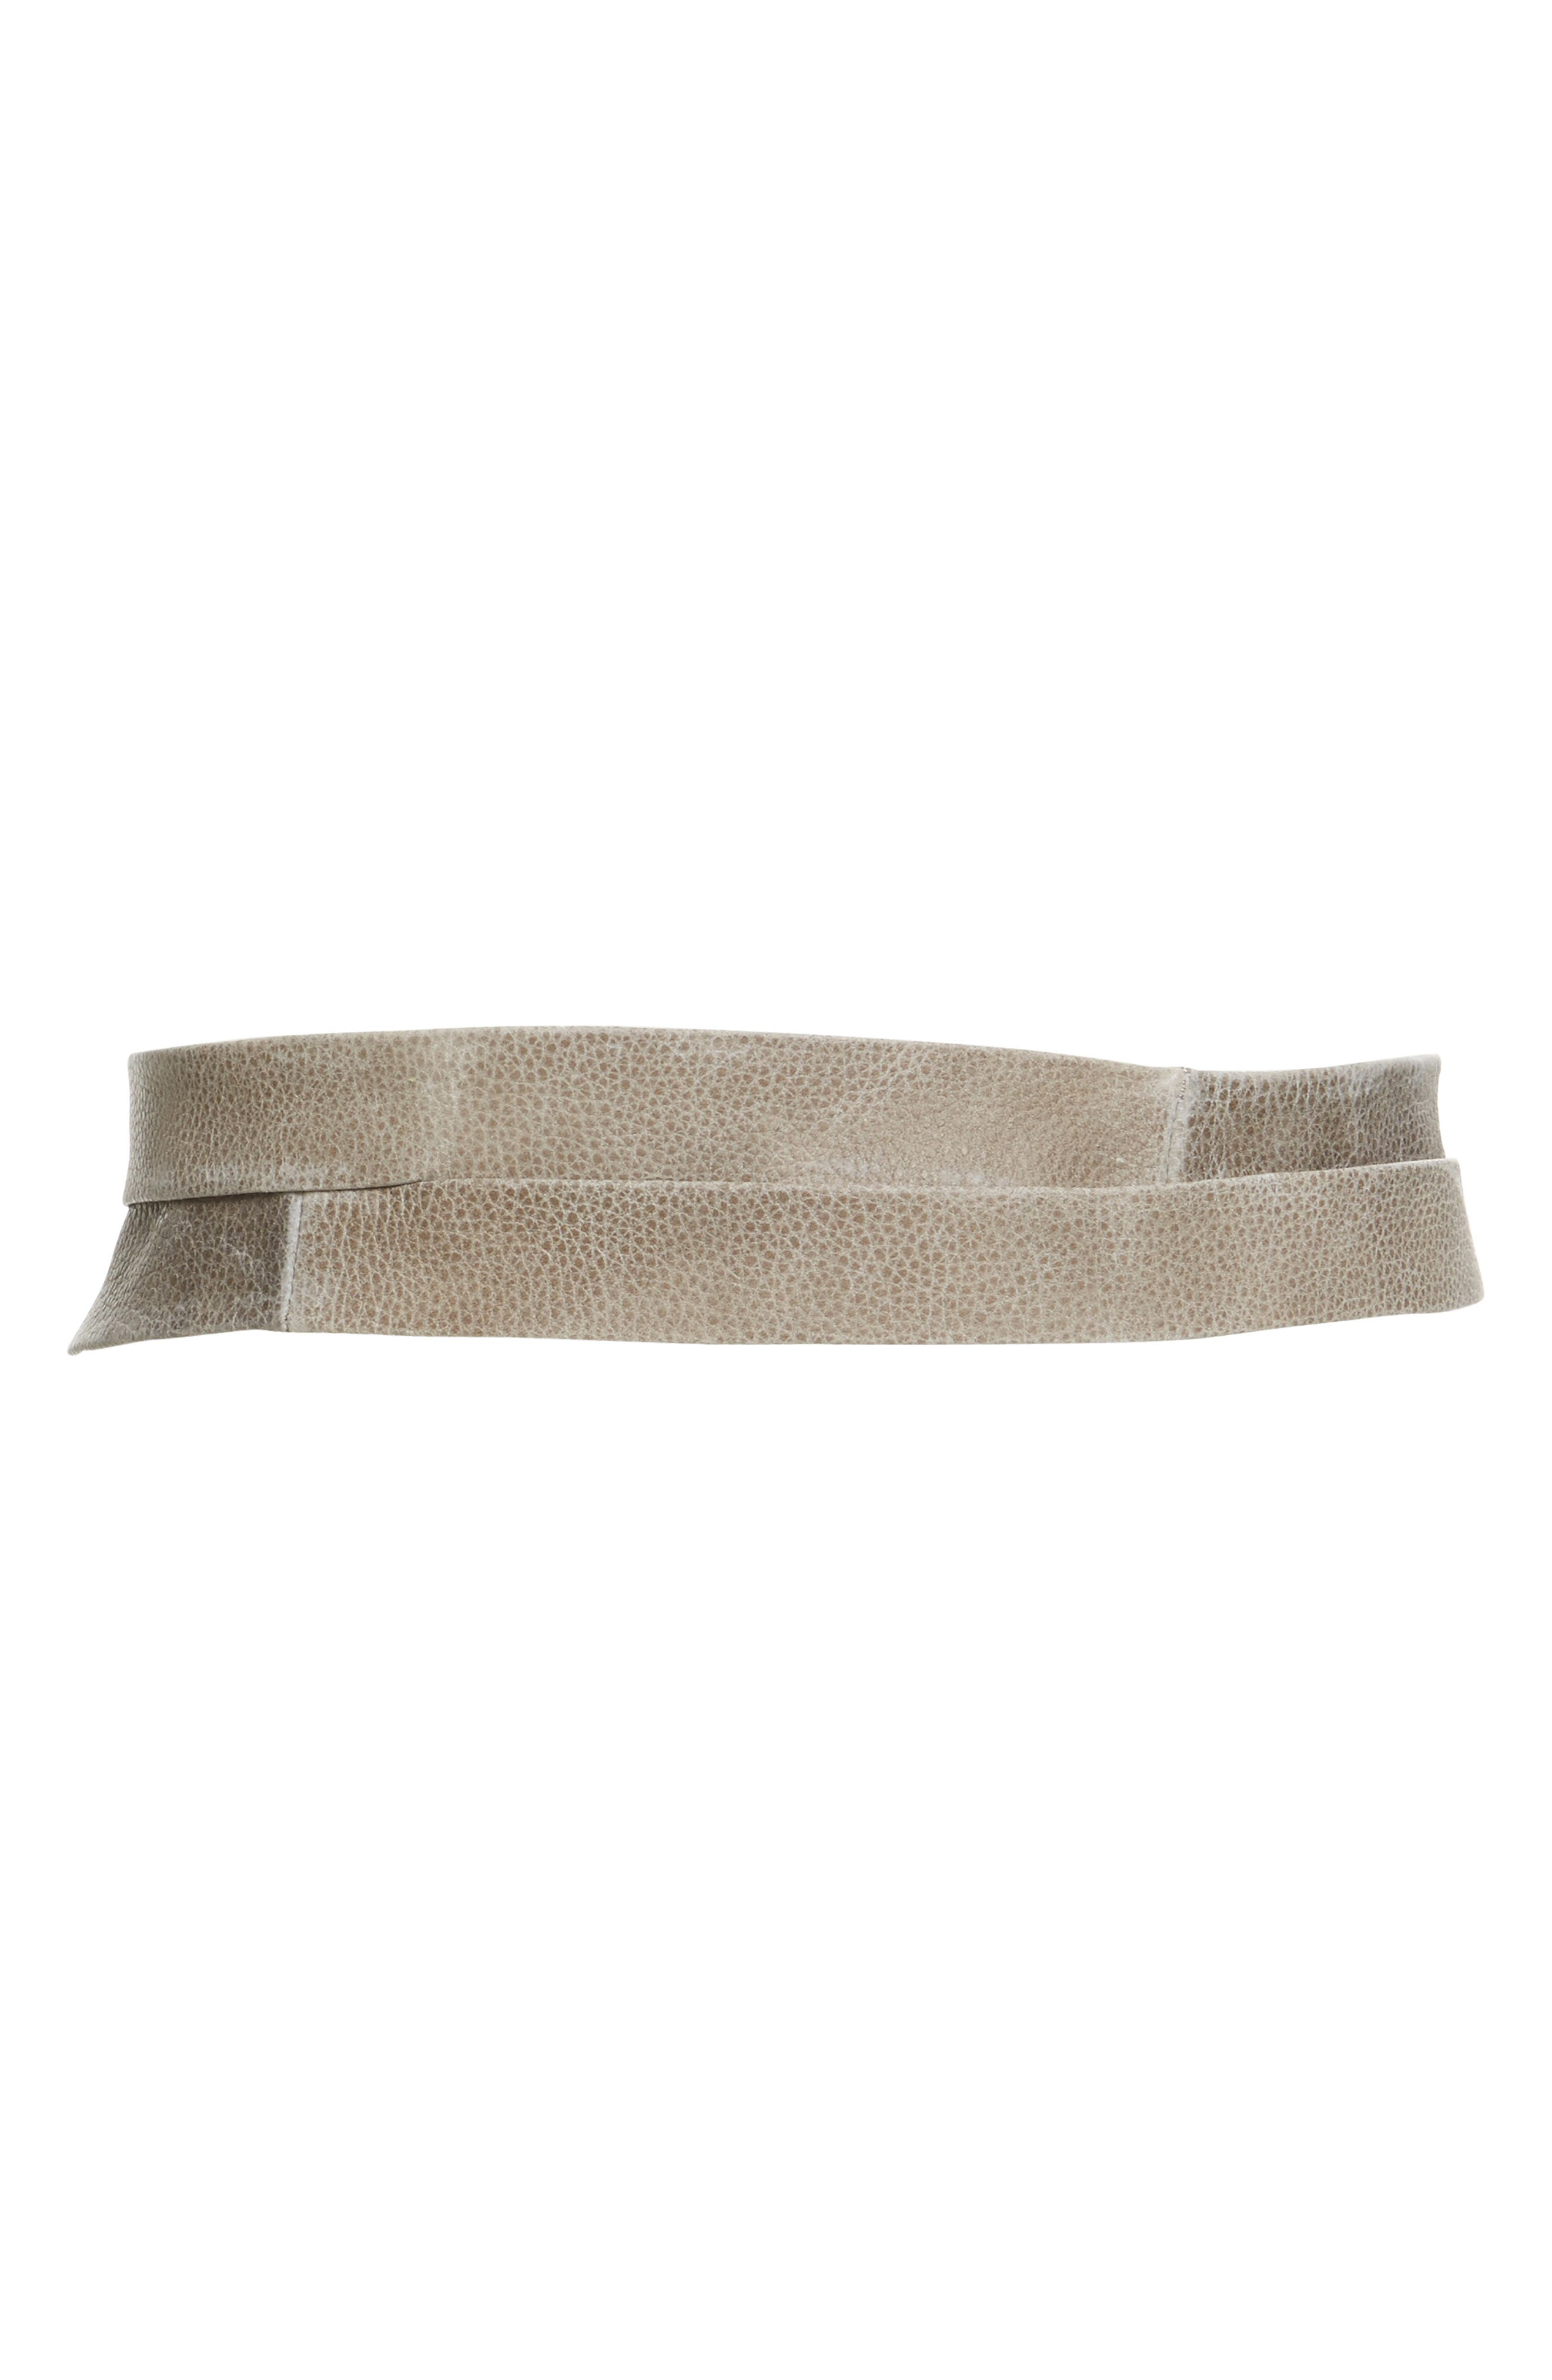 Classic Wrap Belt,                             Alternate thumbnail 2, color,                             Grey Pebble